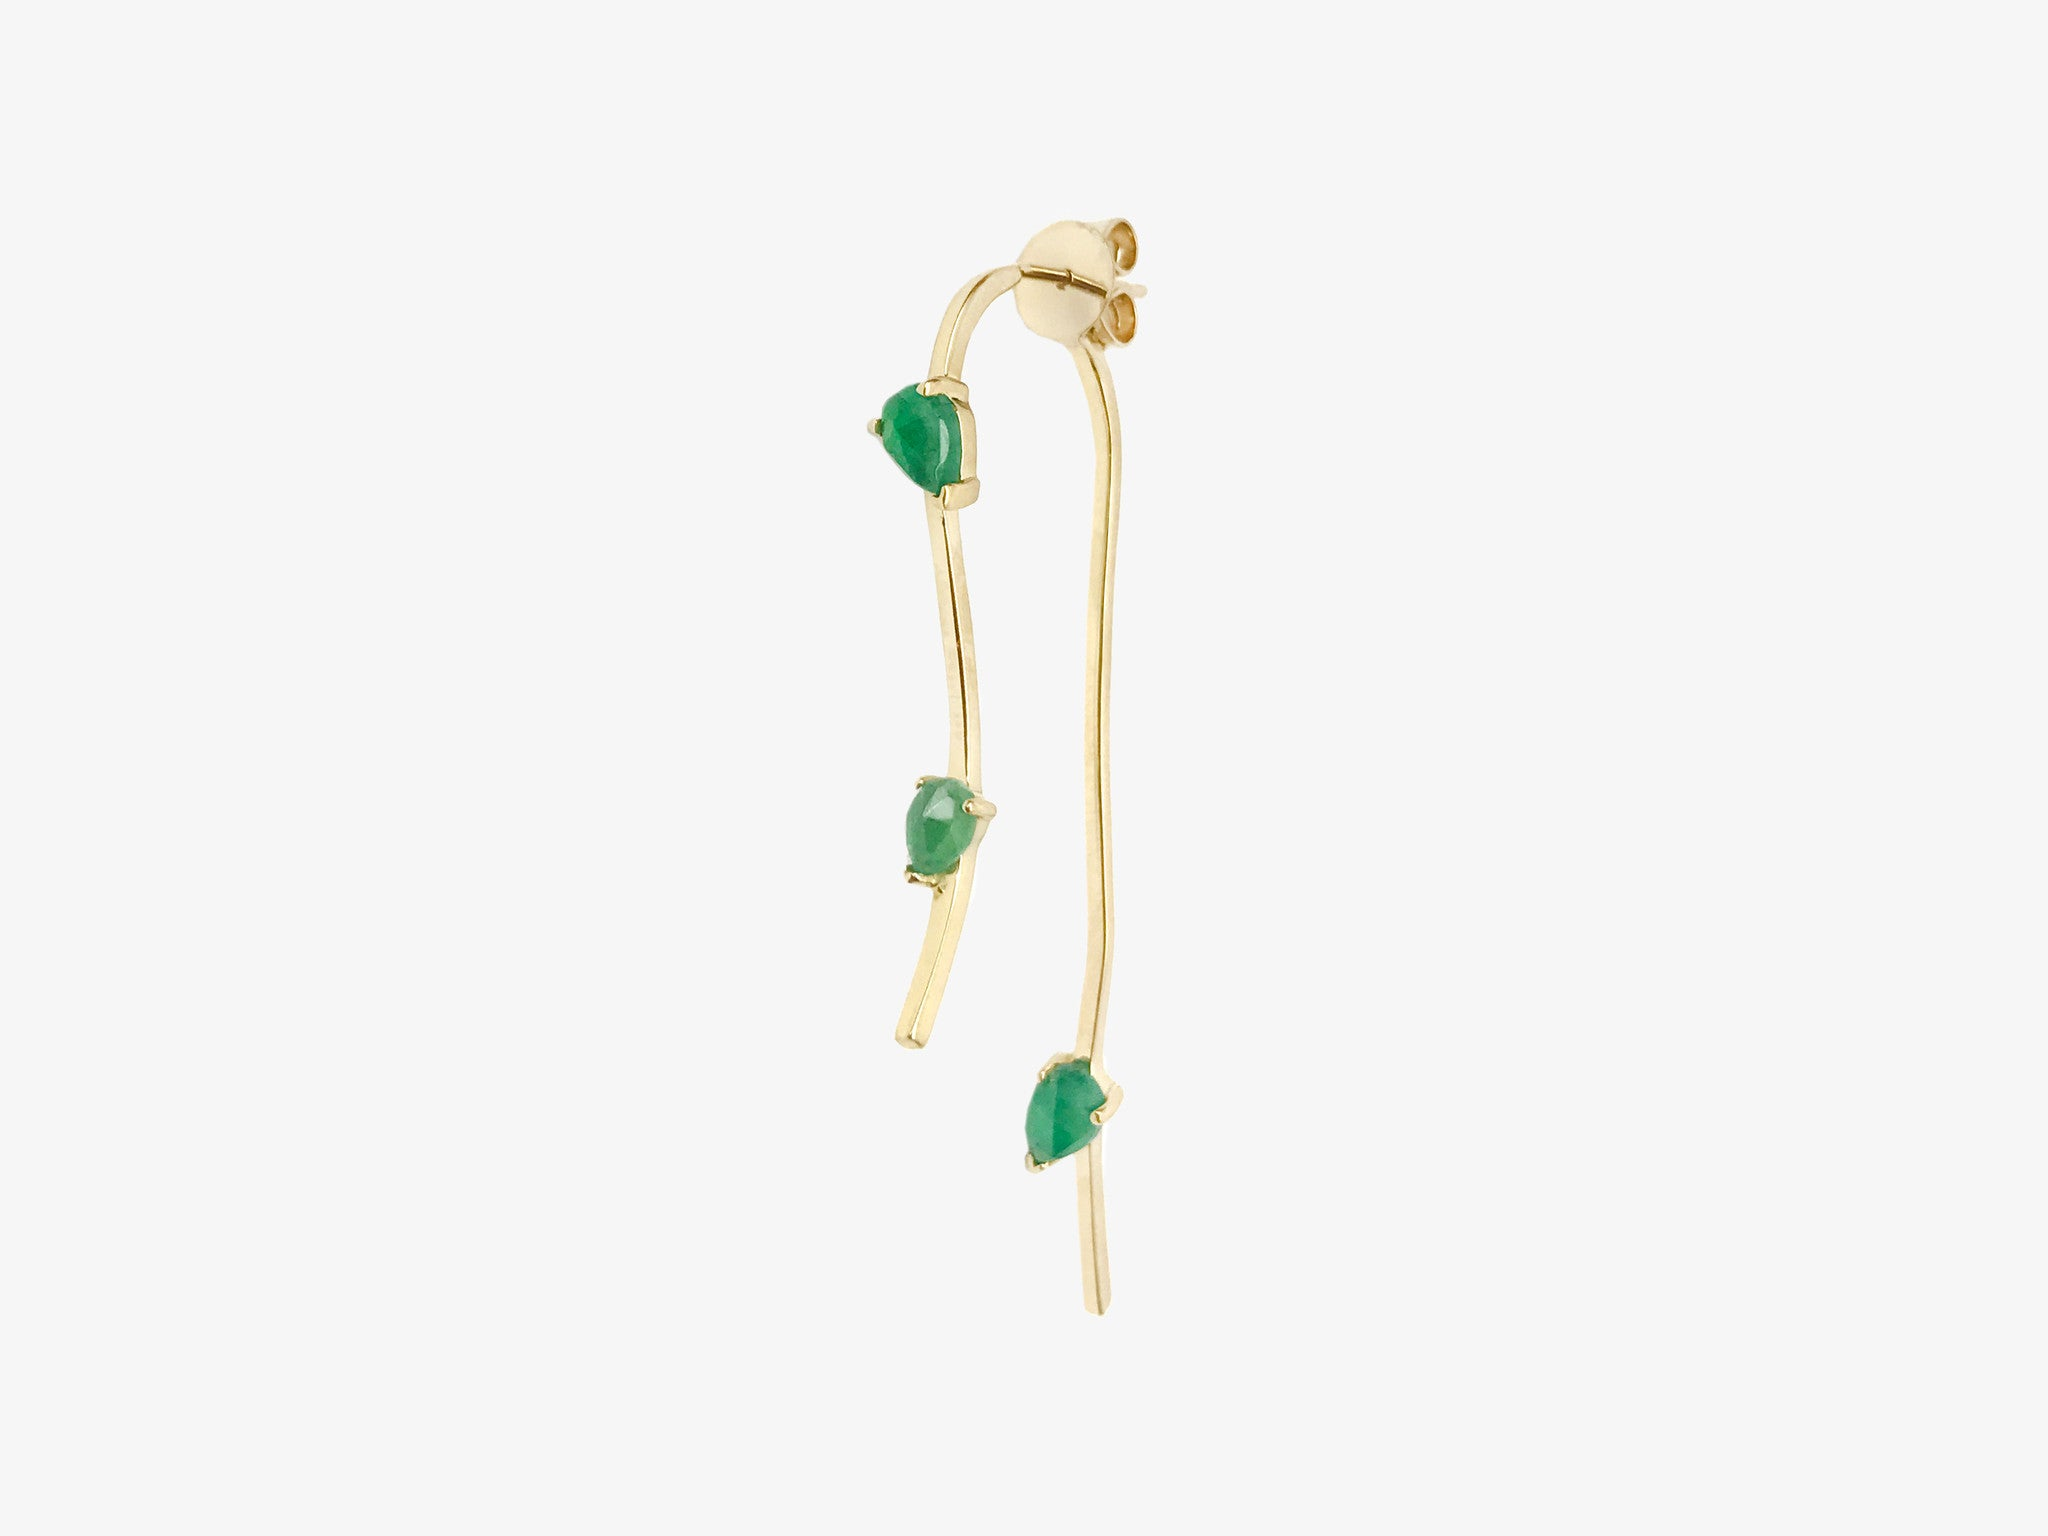 Small Sculptural Two Part Curved Earring with Rose Cut Stone Details